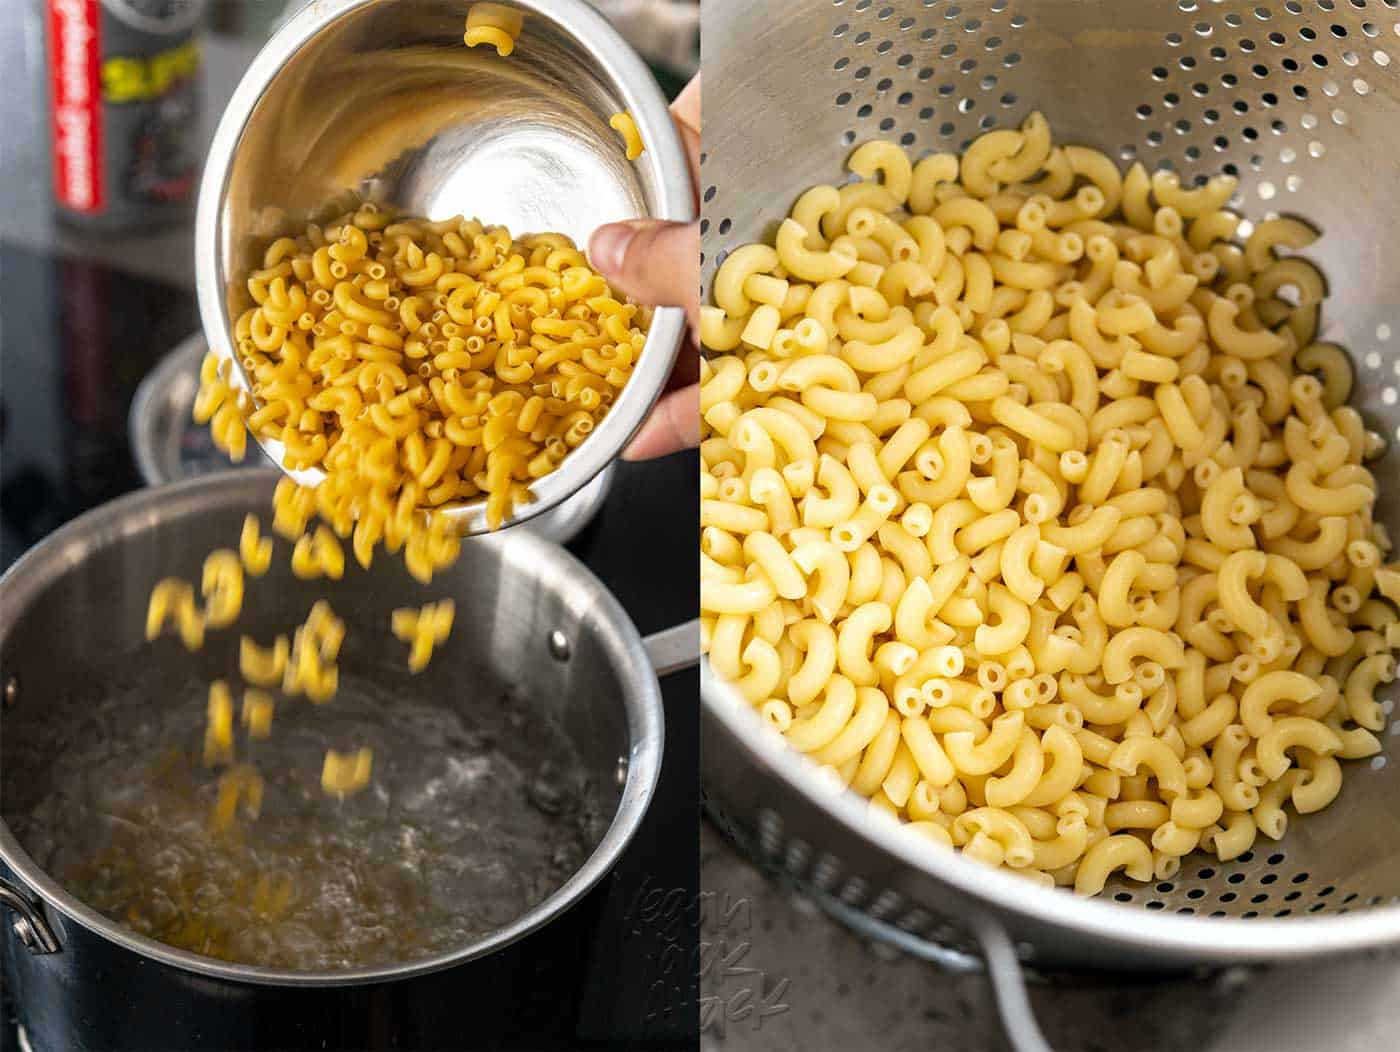 Image collage of pasta being added to boiling water, then drained pasta